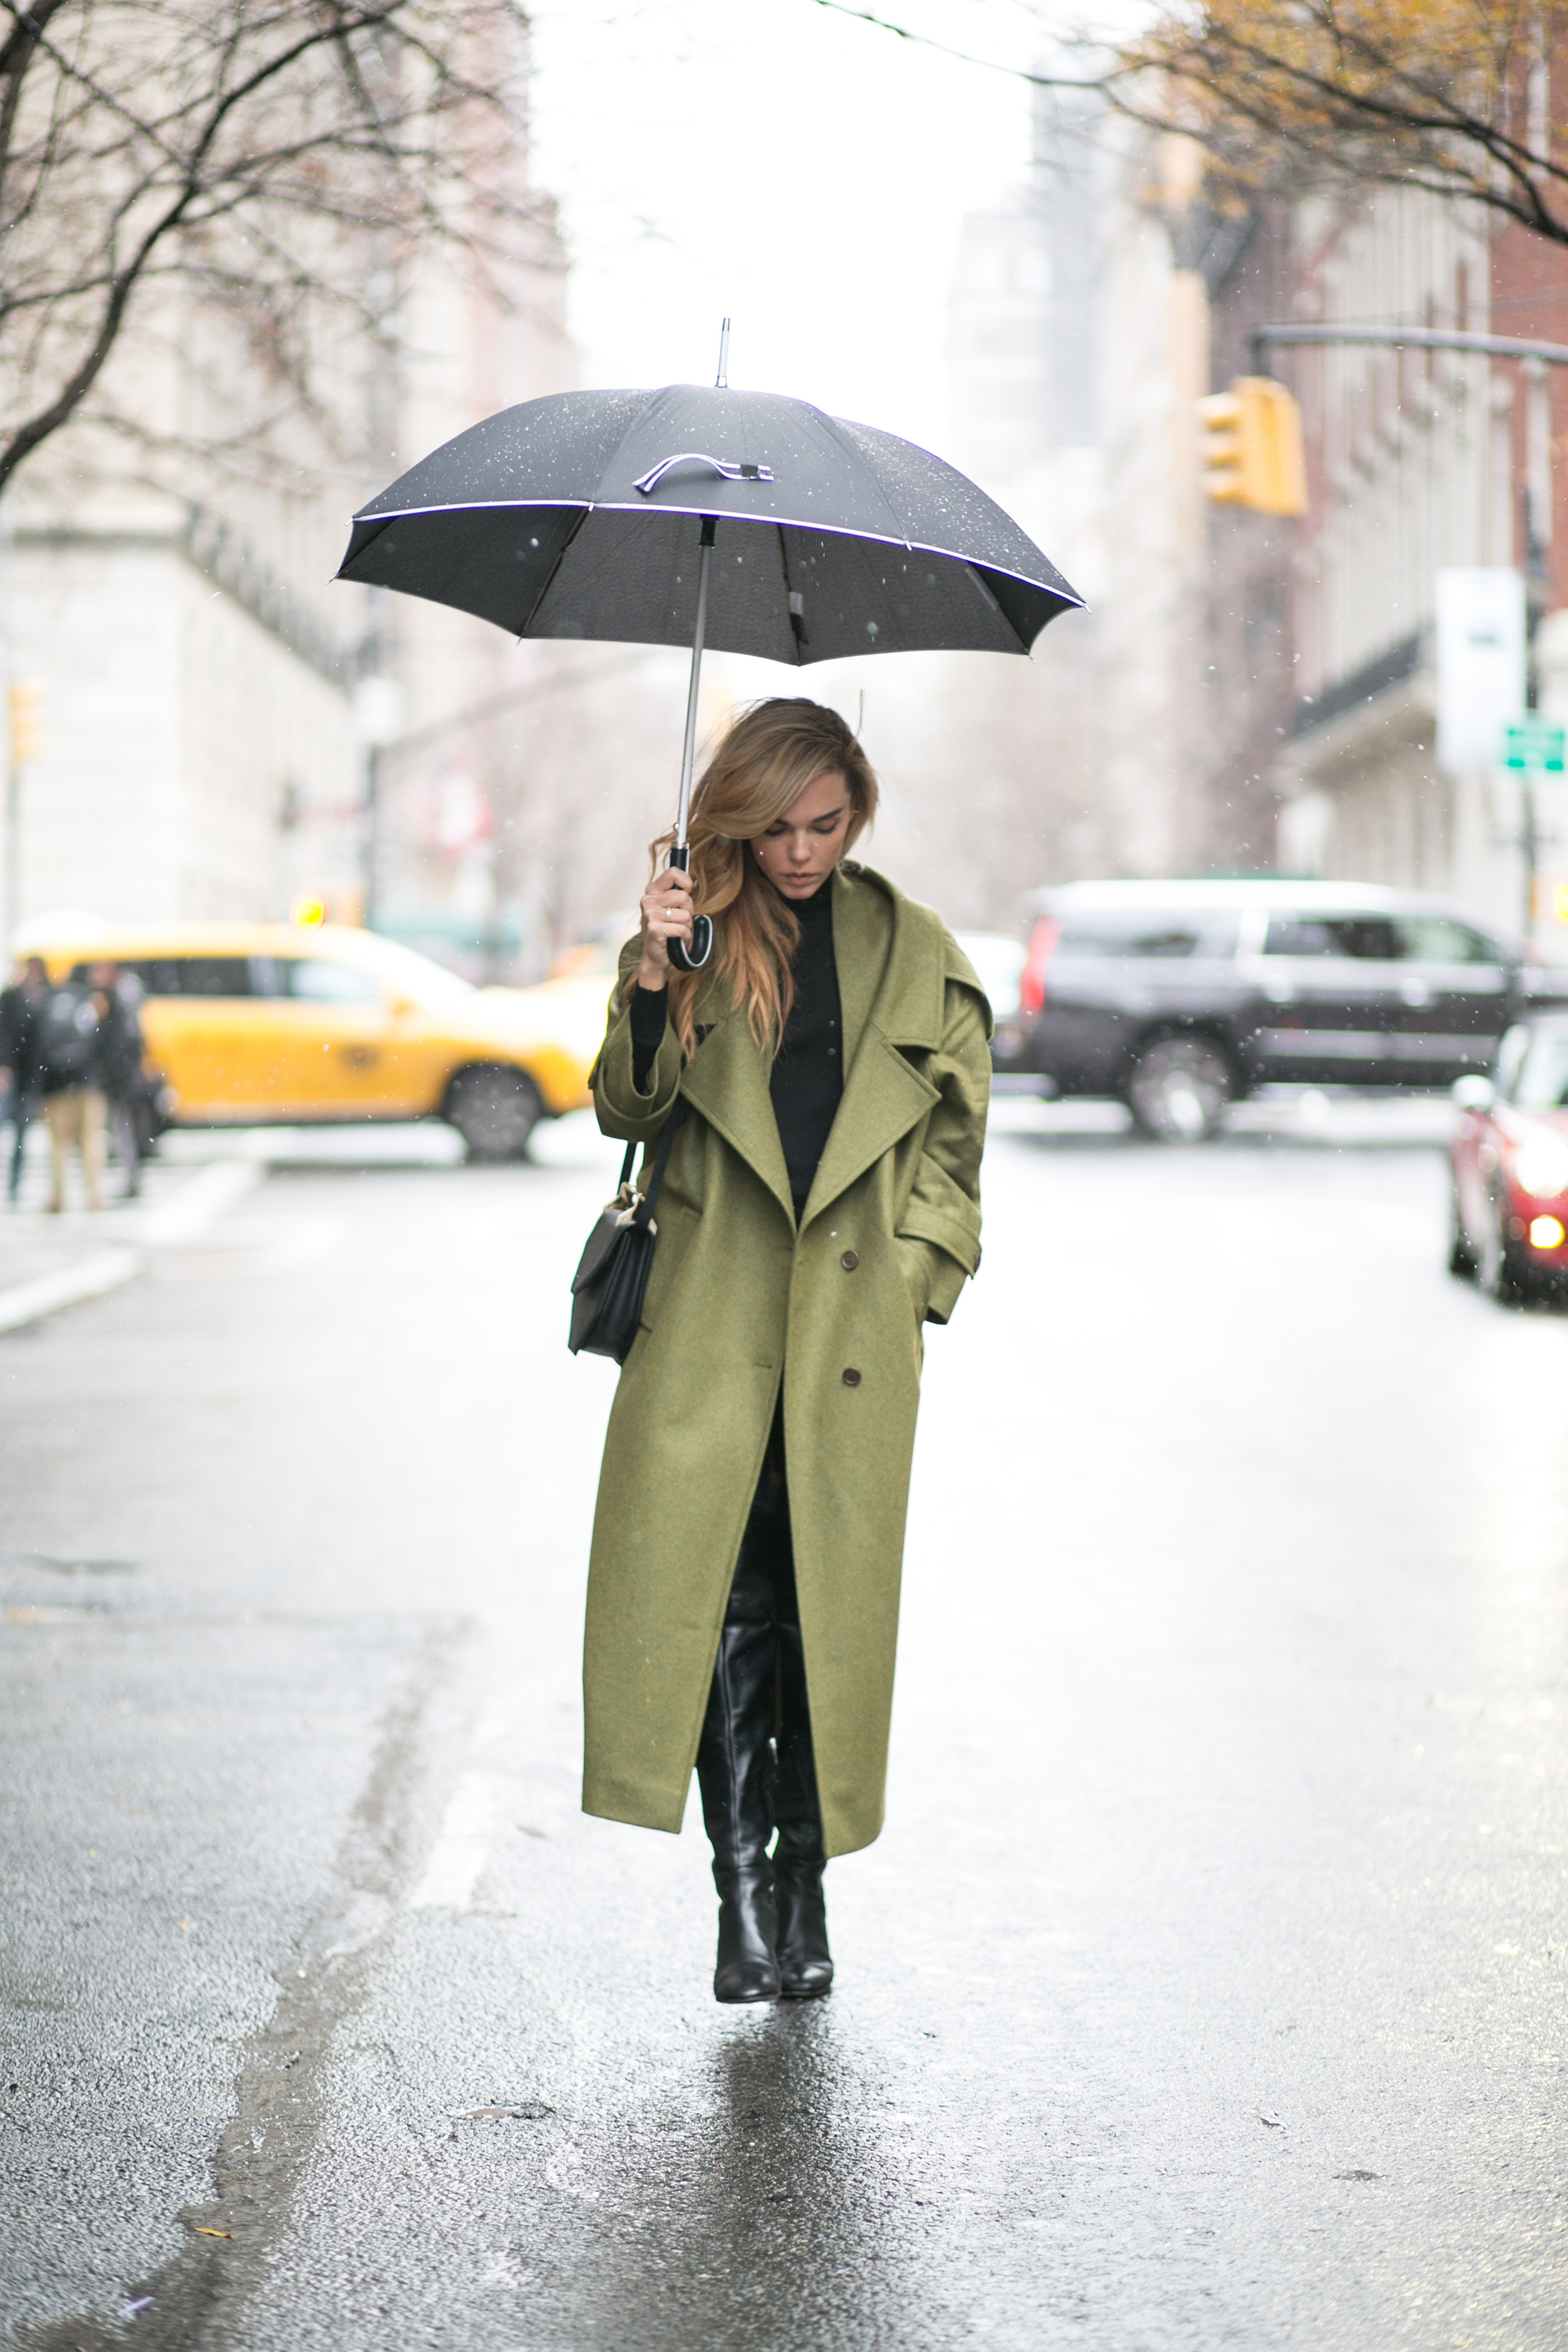 Coats Trend 2015: Evangelie Smyrniotaki is wearing an oversized green coat from Preen by Thornton Bregazzi